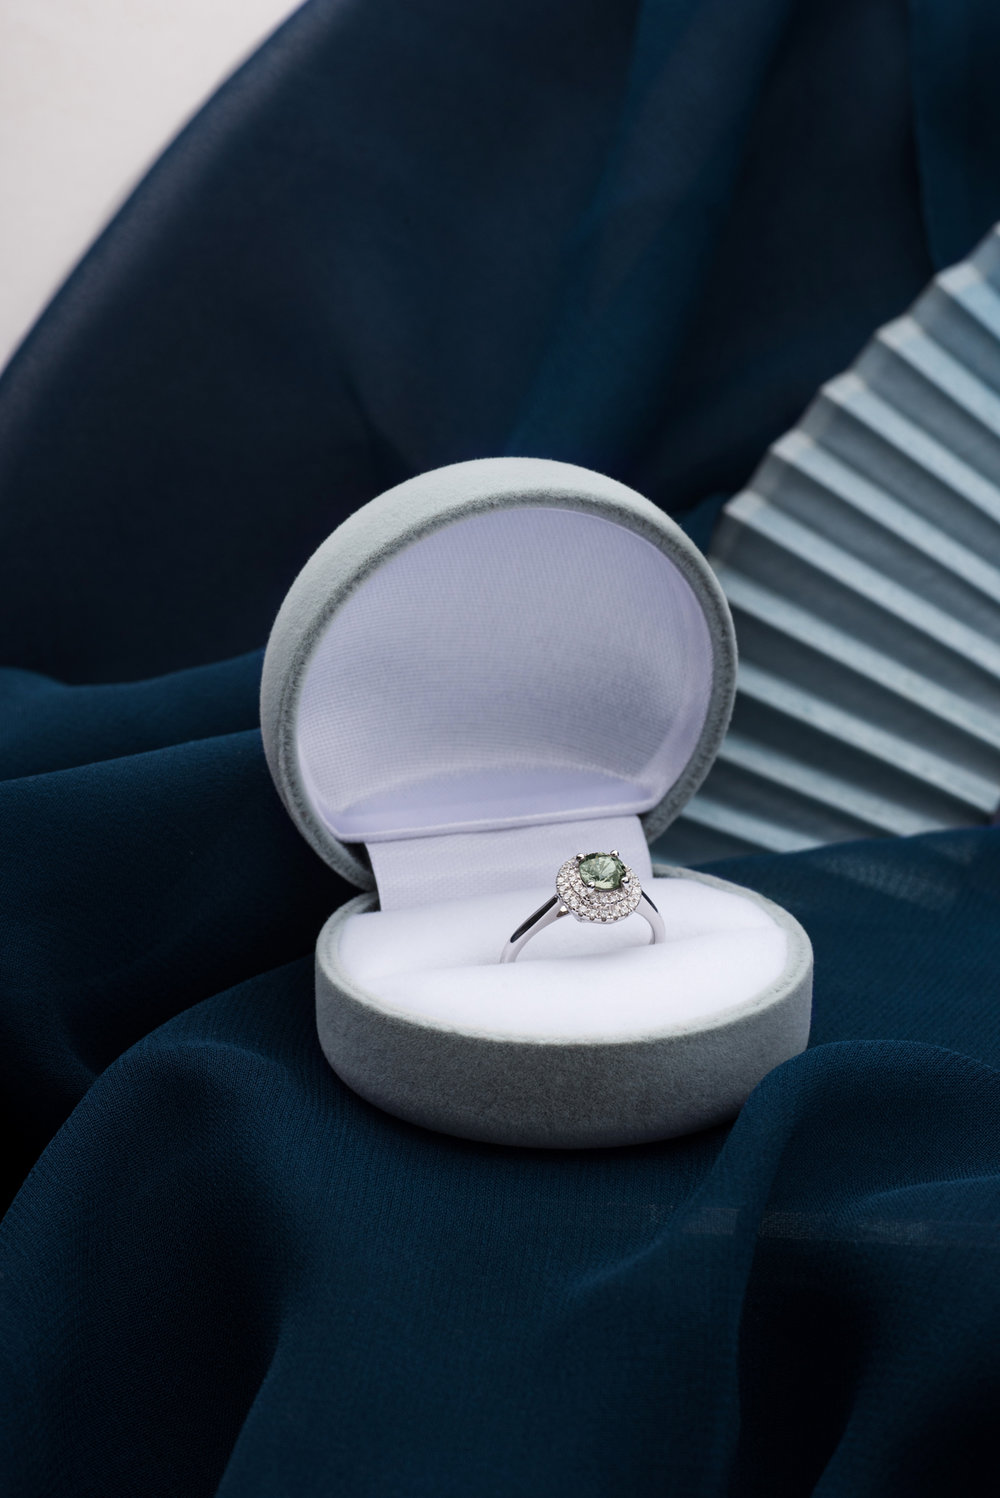 180921_Engagement-Ring_Sapphire_Flat-Lay-1671.jpg